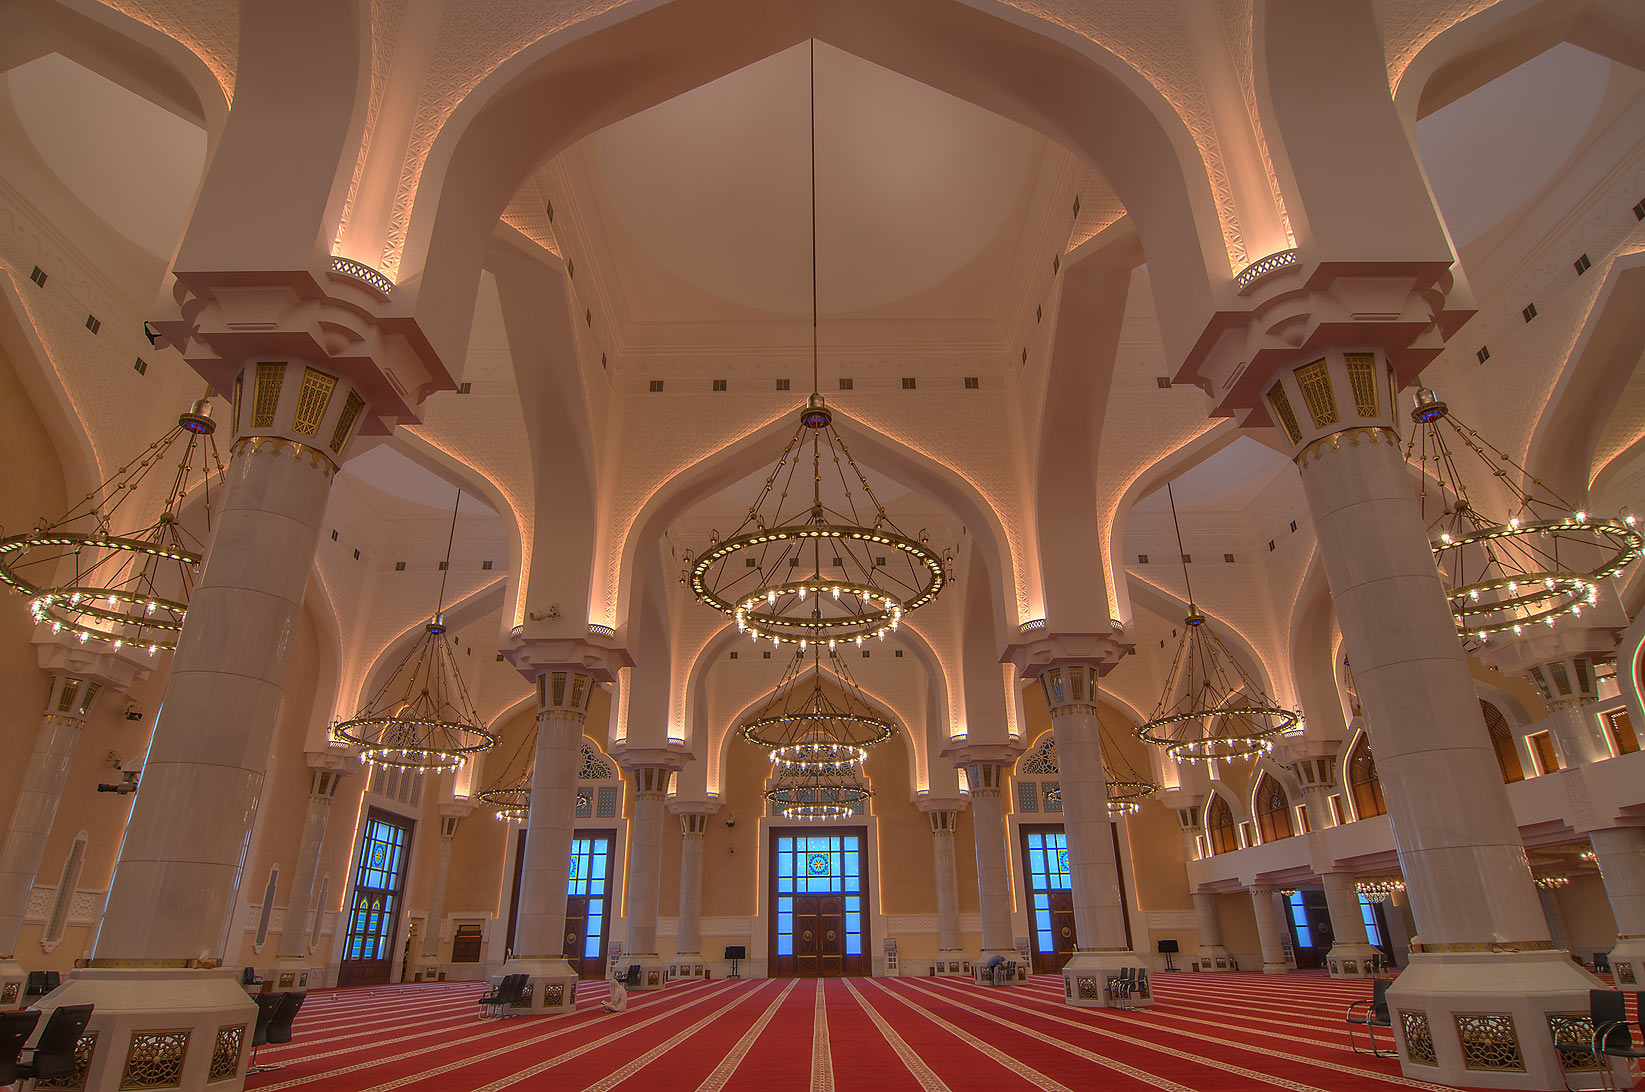 Multitude of columns in prayer hall (musallah) in...Ibn Abdul Wahhab Mosque). Doha, Qatar